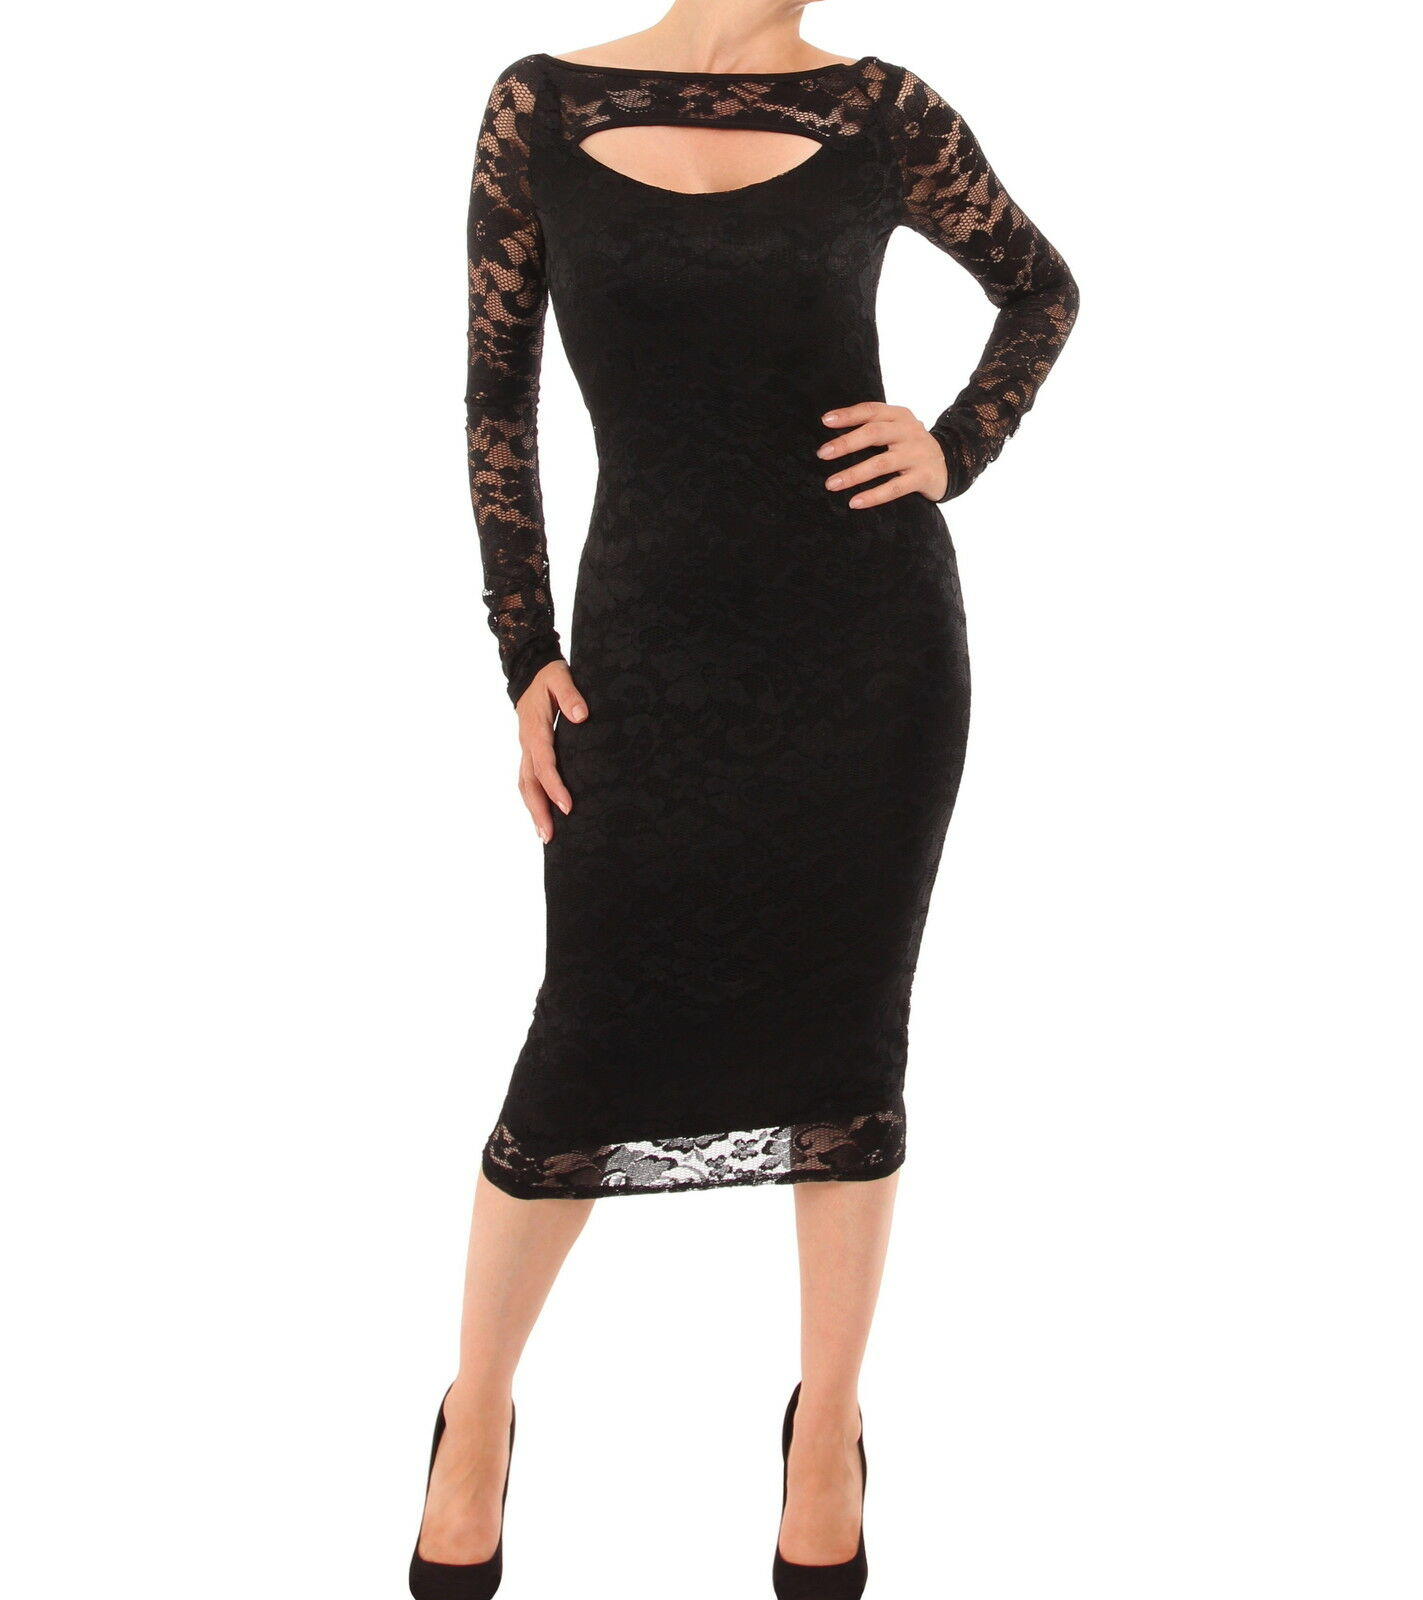 New Lace Cut Out Keyhole Pencil Dress - Knee Length